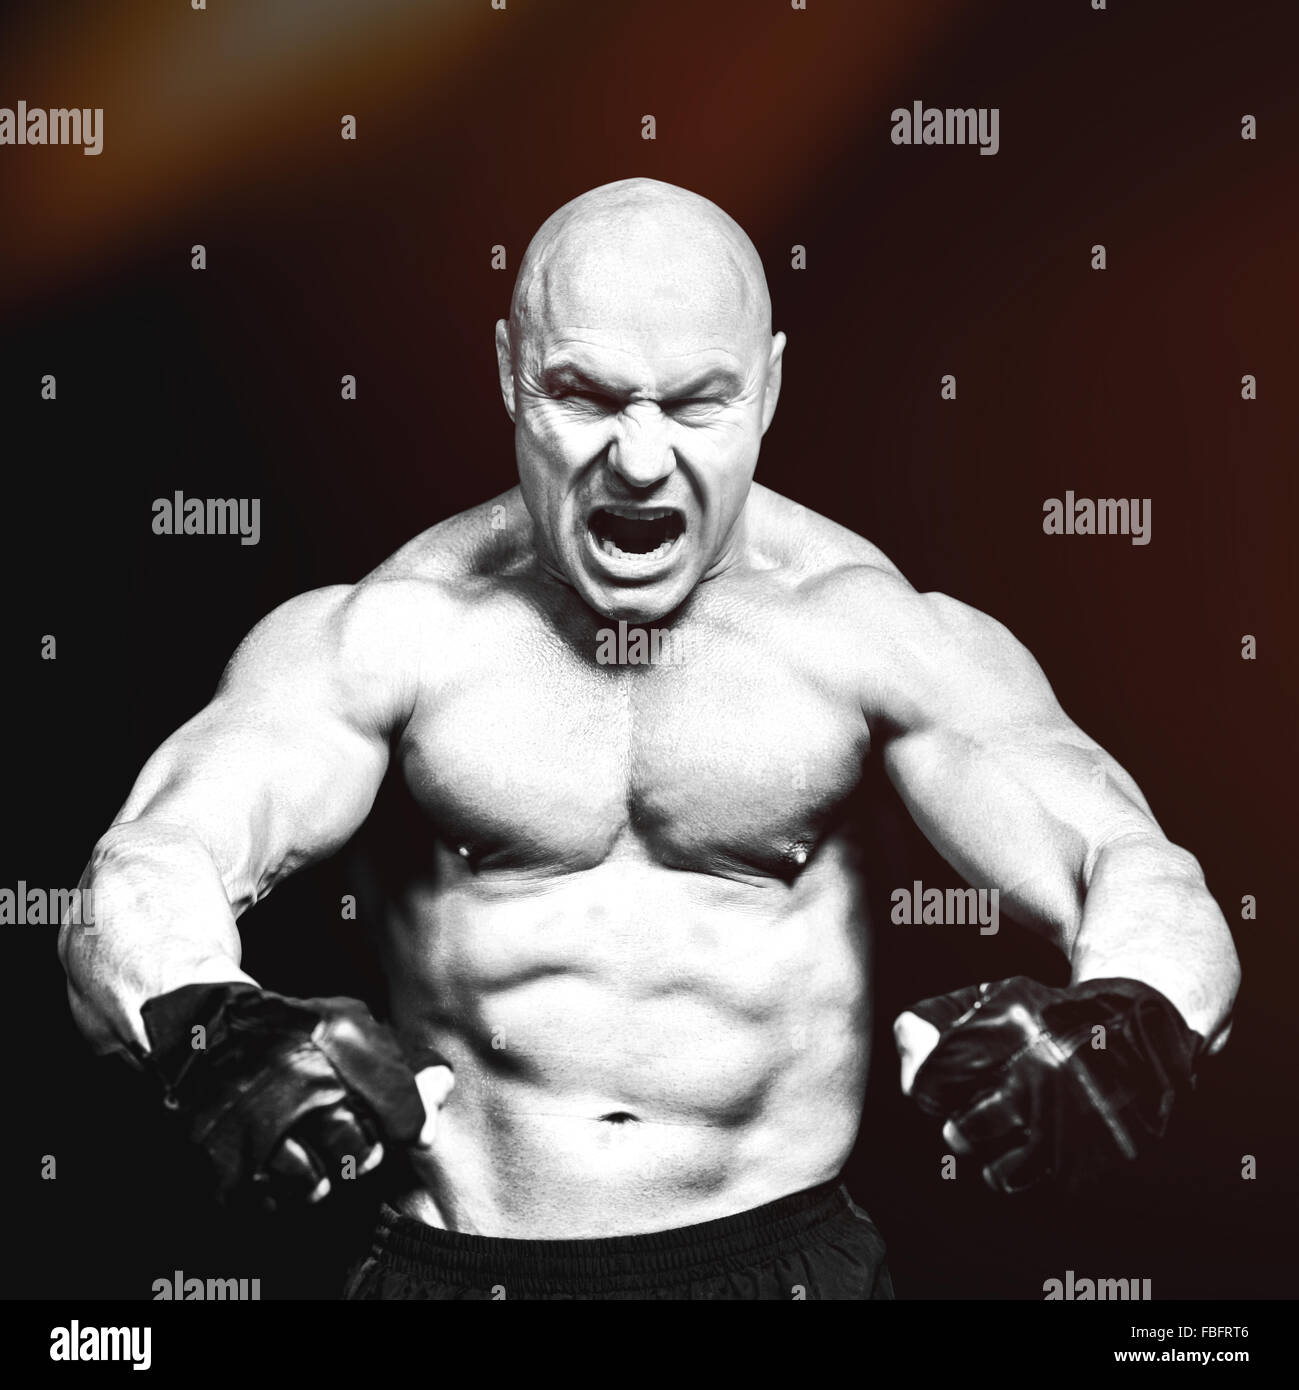 Composite image of aggressive fighter flexing muscles - Stock Image